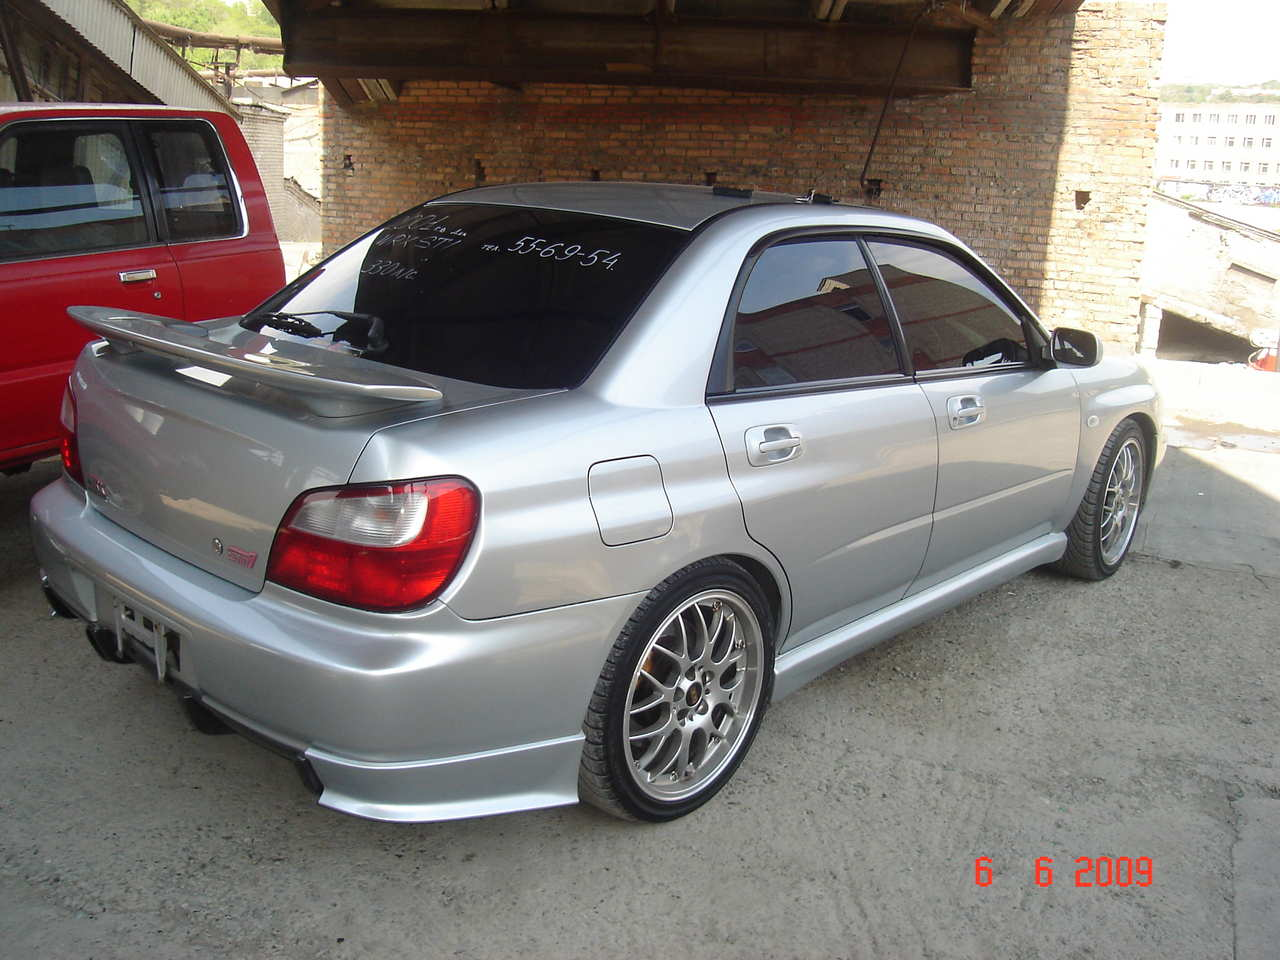 2002 subaru impreza wrx sti pictures 2000cc gasoline. Black Bedroom Furniture Sets. Home Design Ideas